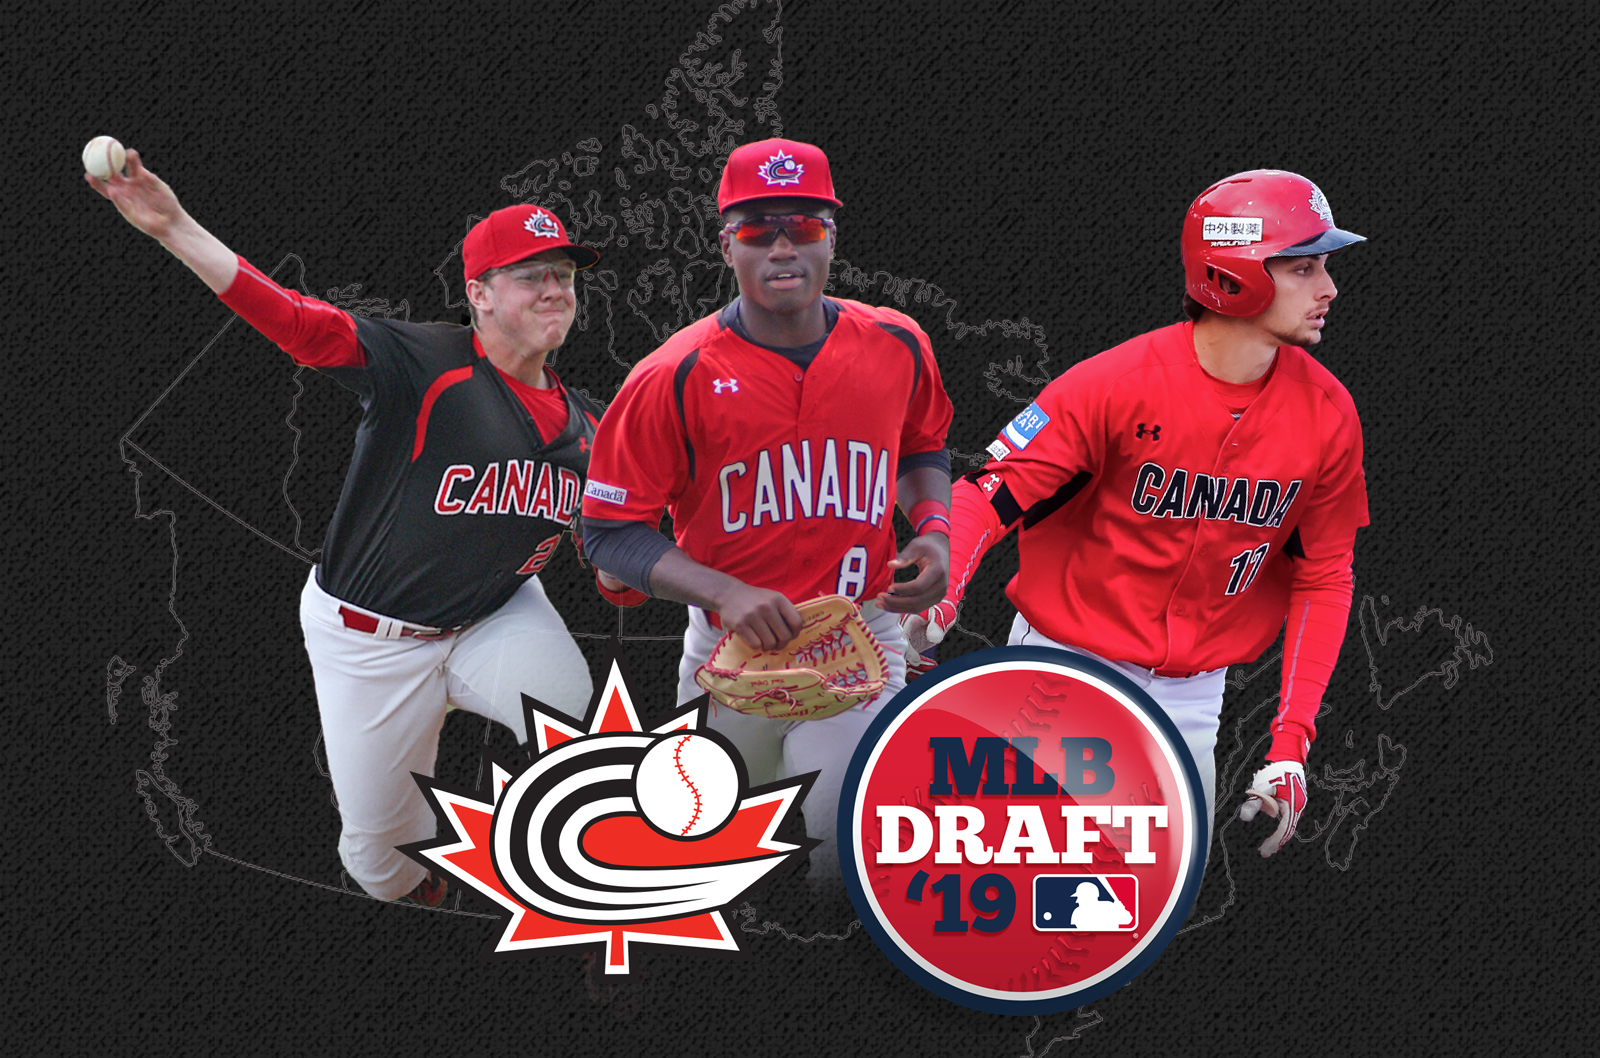 DRAFT GUIDE: 2019 Major League Baseball Draft